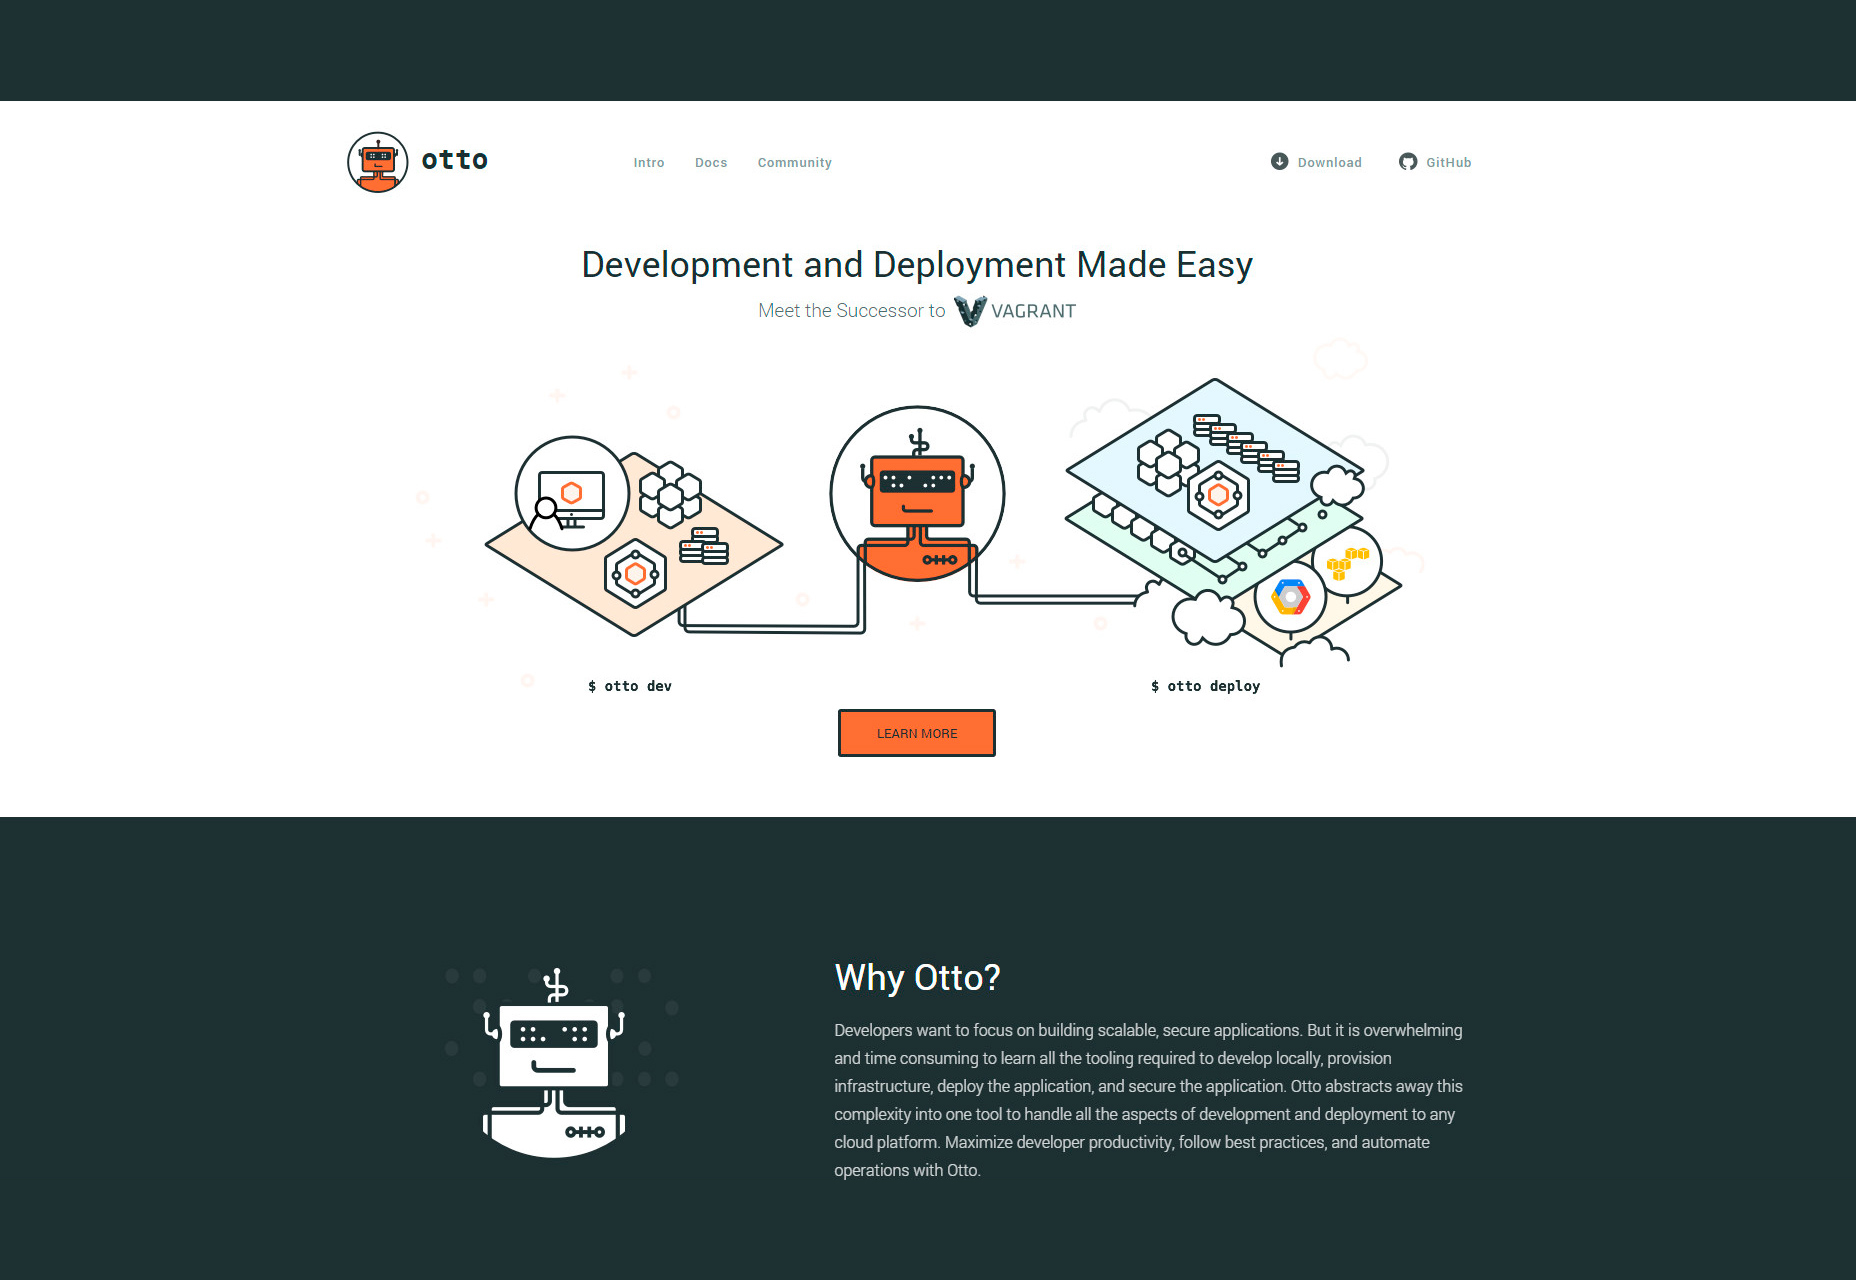 otto-web-app-development-deployment-environment